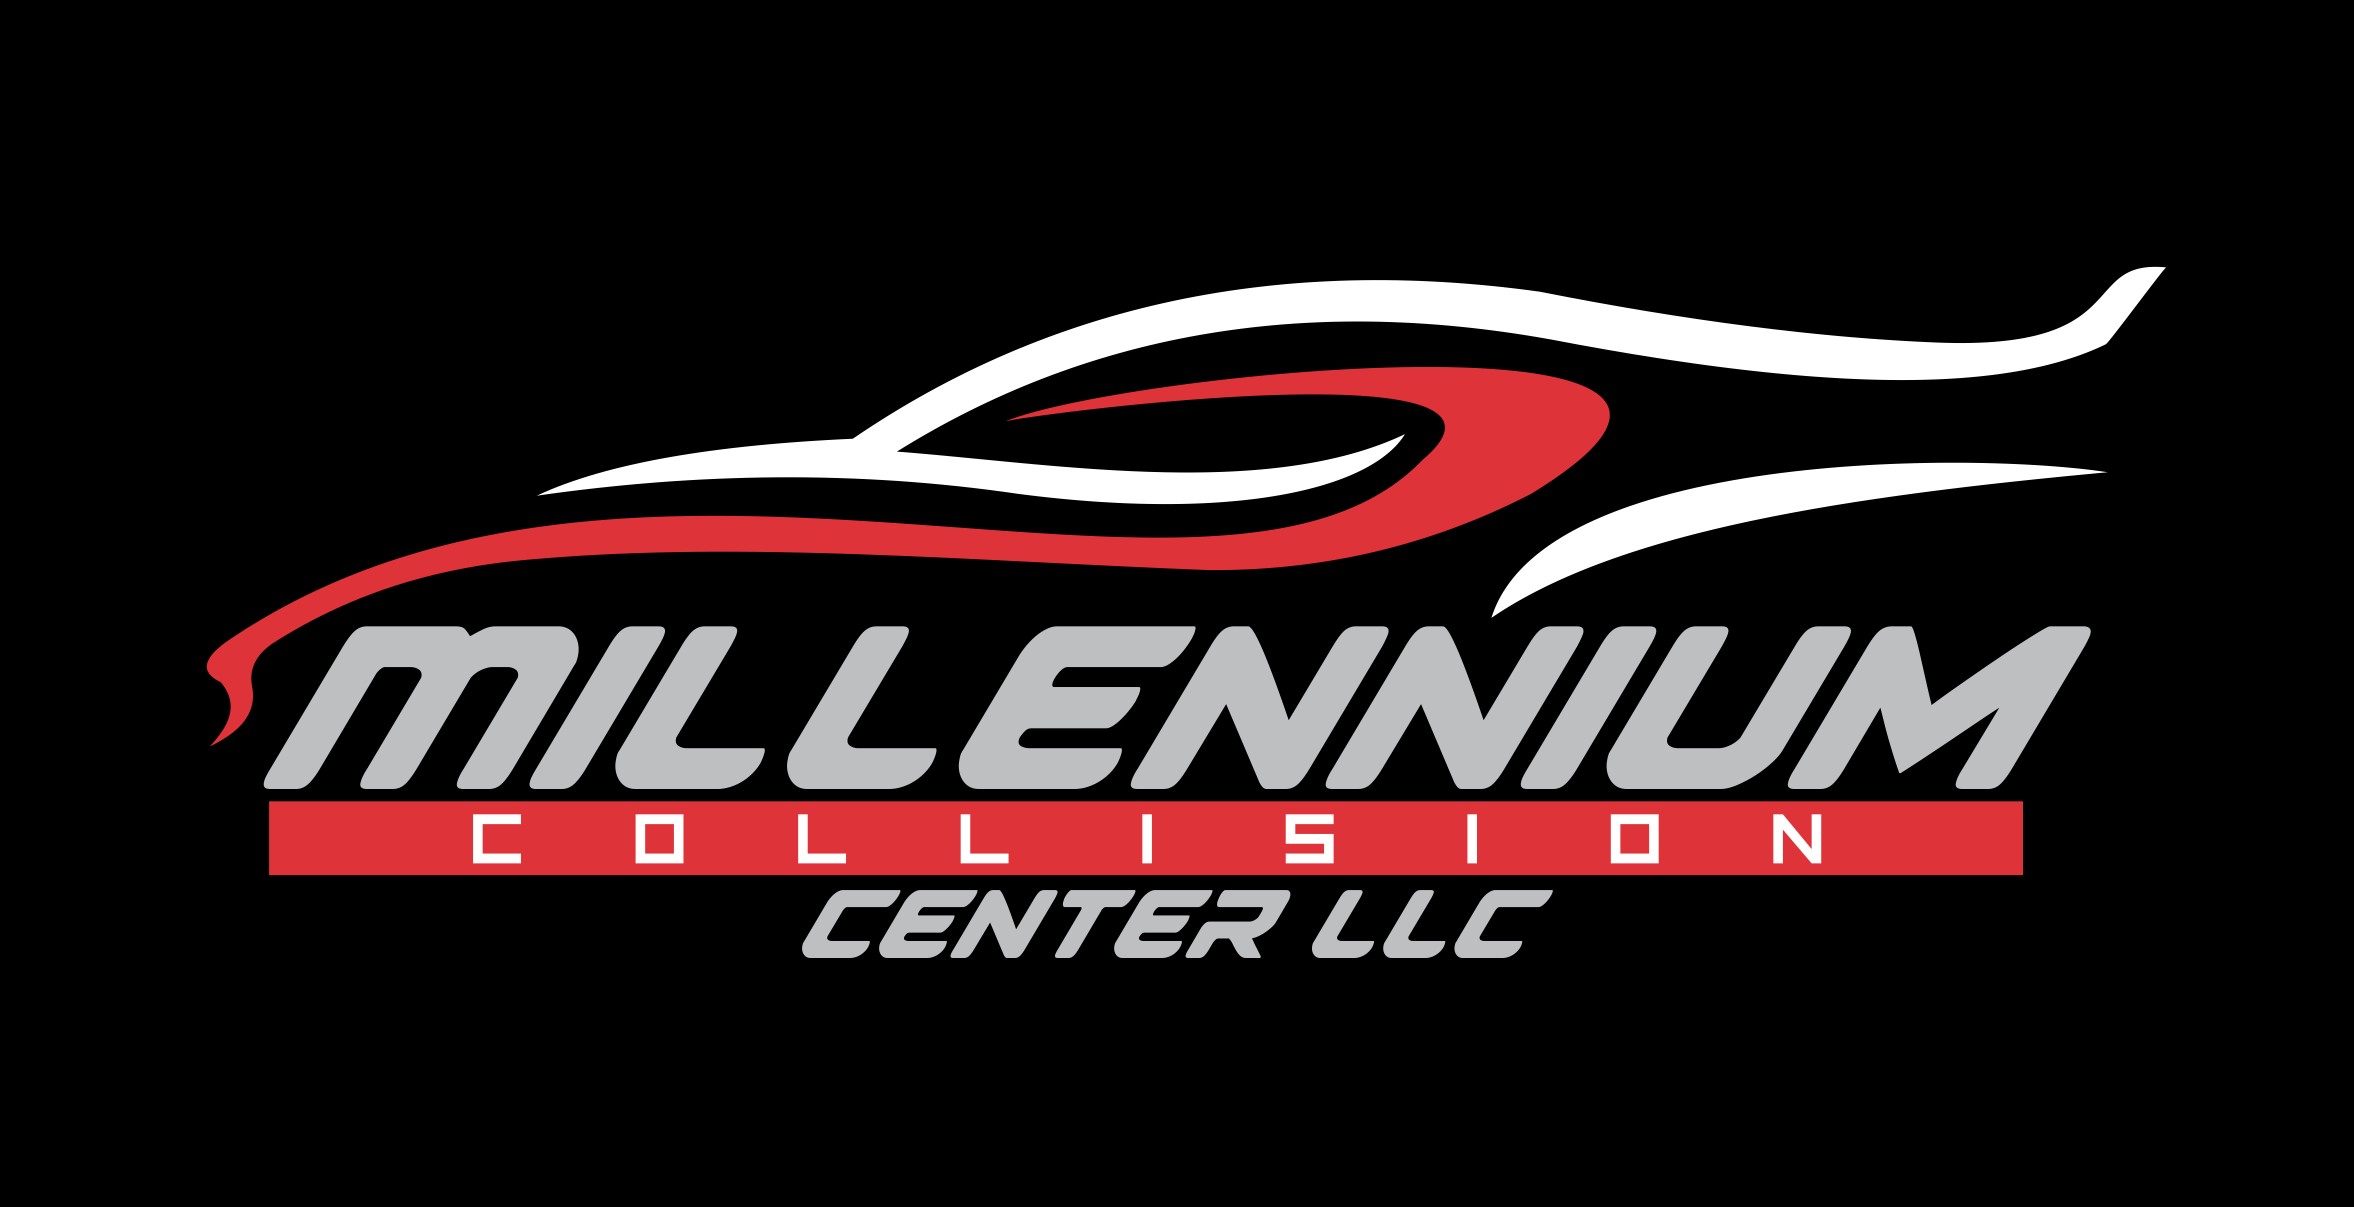 Millennium Collision Center